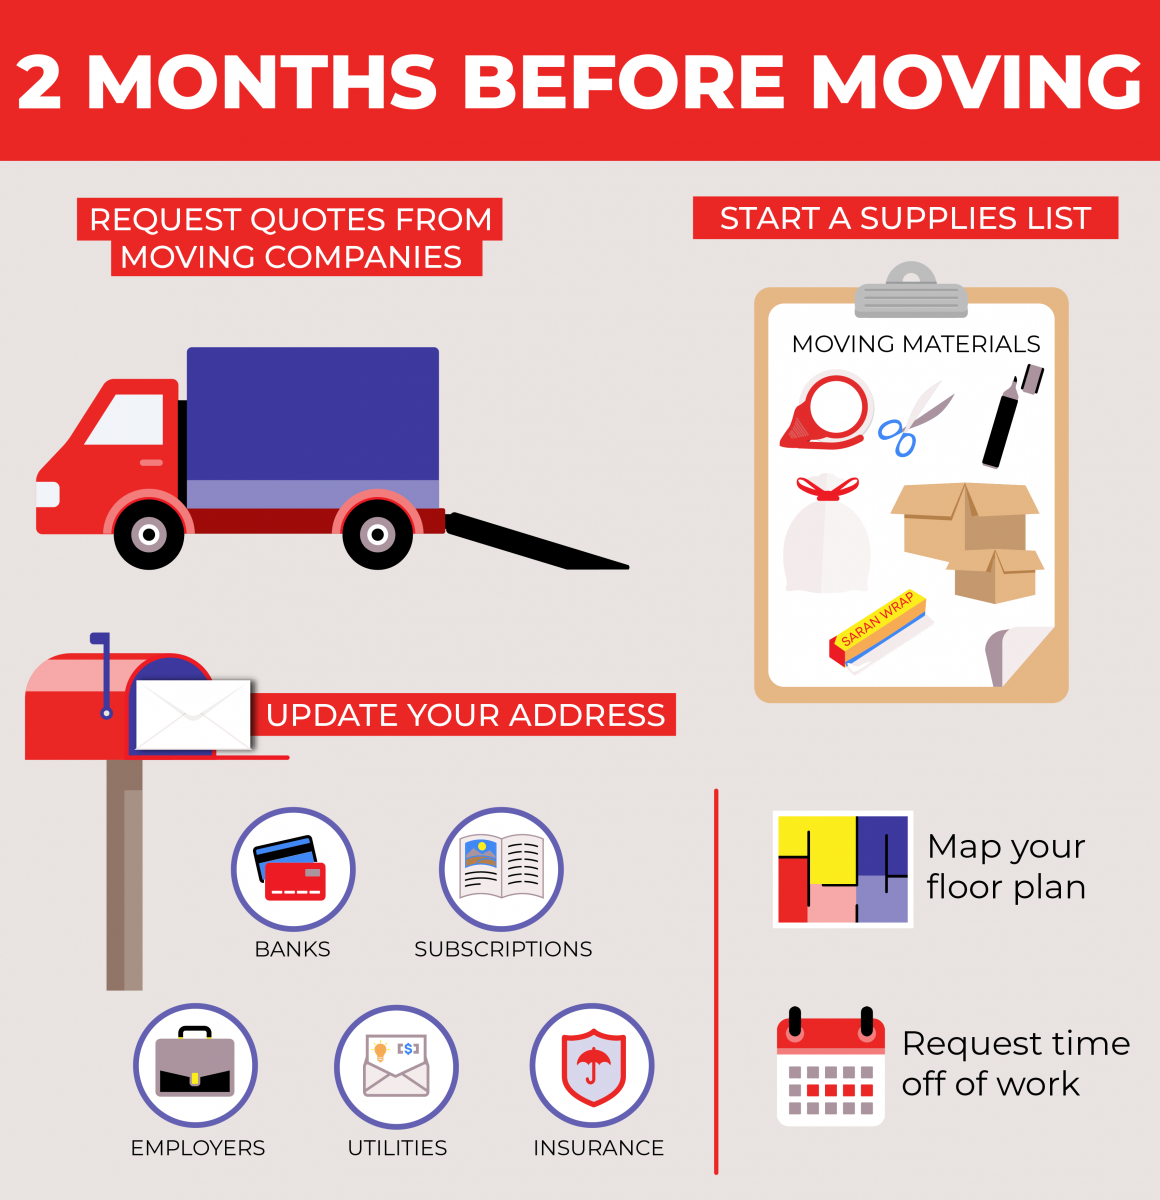 How to prep for your move 2 months before moving day.